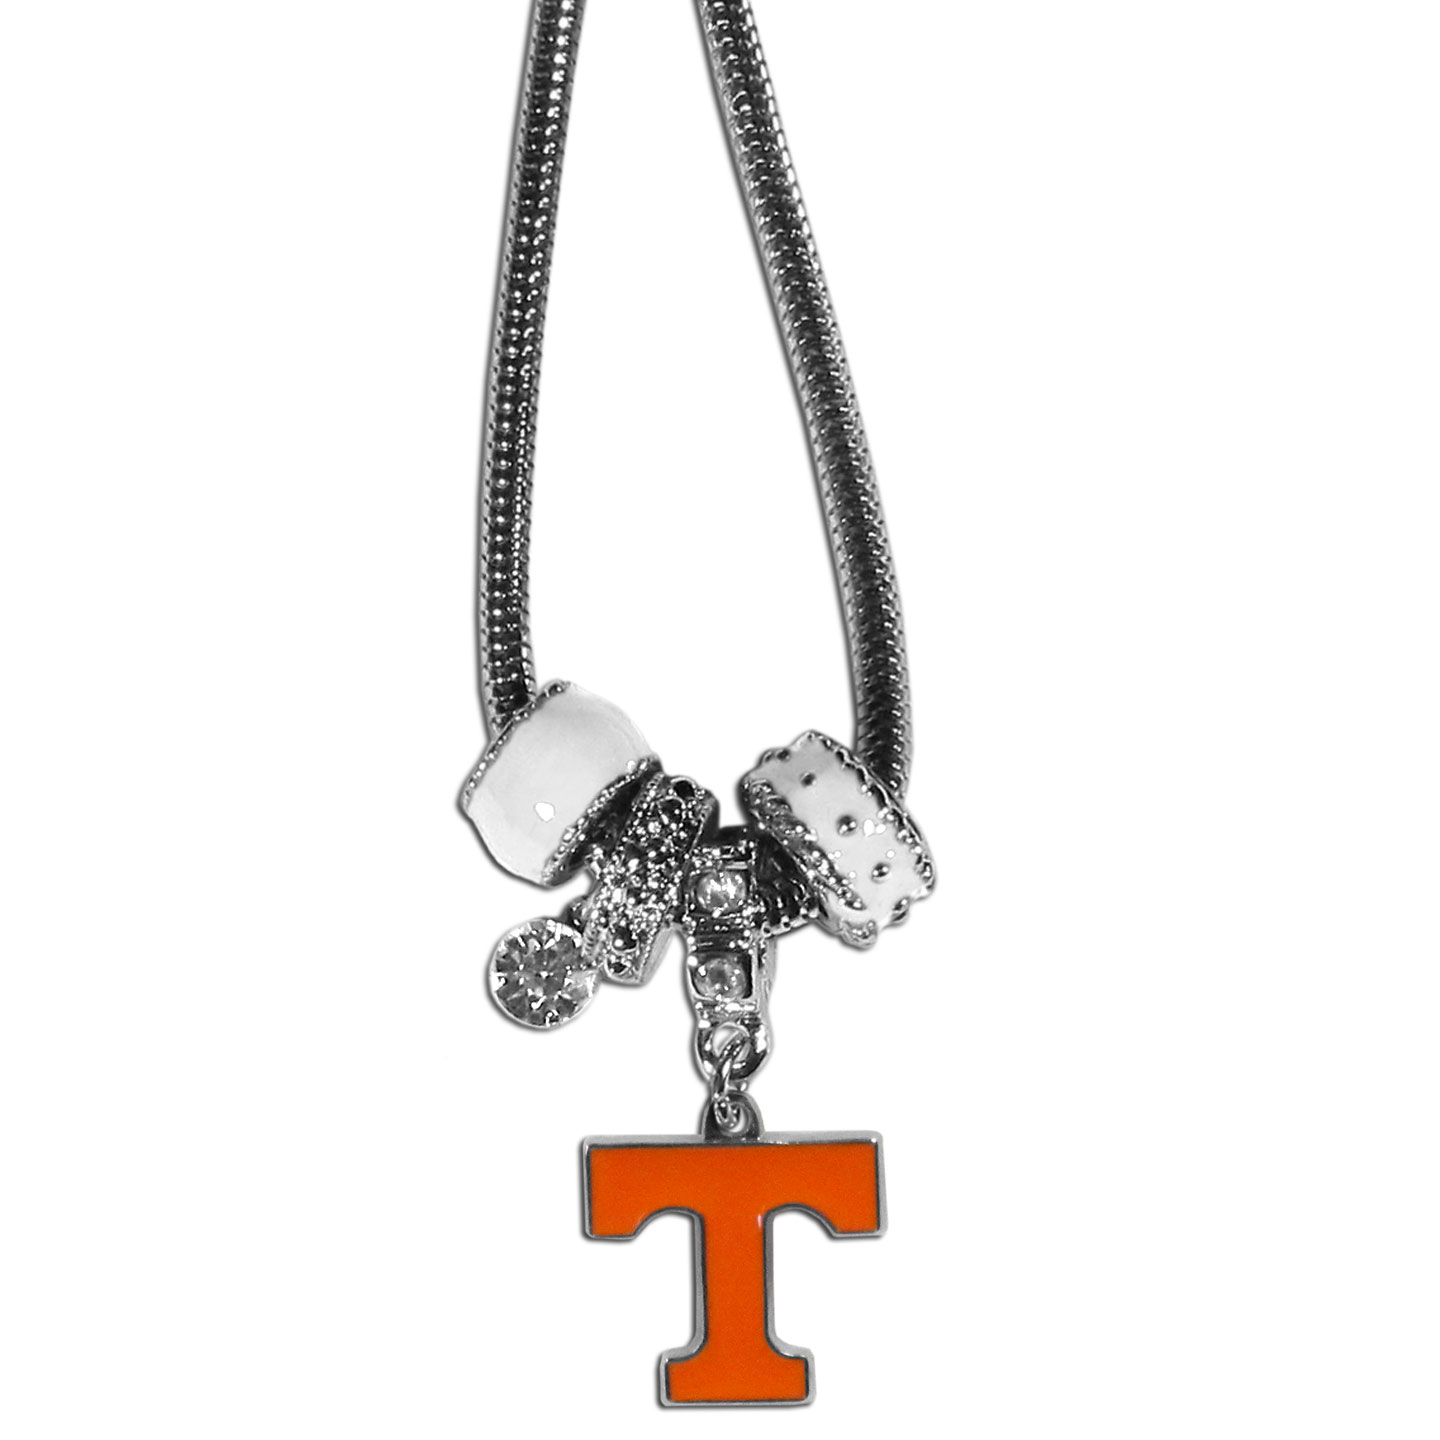 Tennessee Volunteers Euro Bead Necklace - We have combined the wildly popular Euro style beads with your favorite team to create our Tennessee Volunteers bead necklace. The 18 inch snake chain features 4 Euro beads with enameled team colors and rhinestone accents with a high polish, nickel free charm and rhinestone charm. Perfect way to show off your team pride.